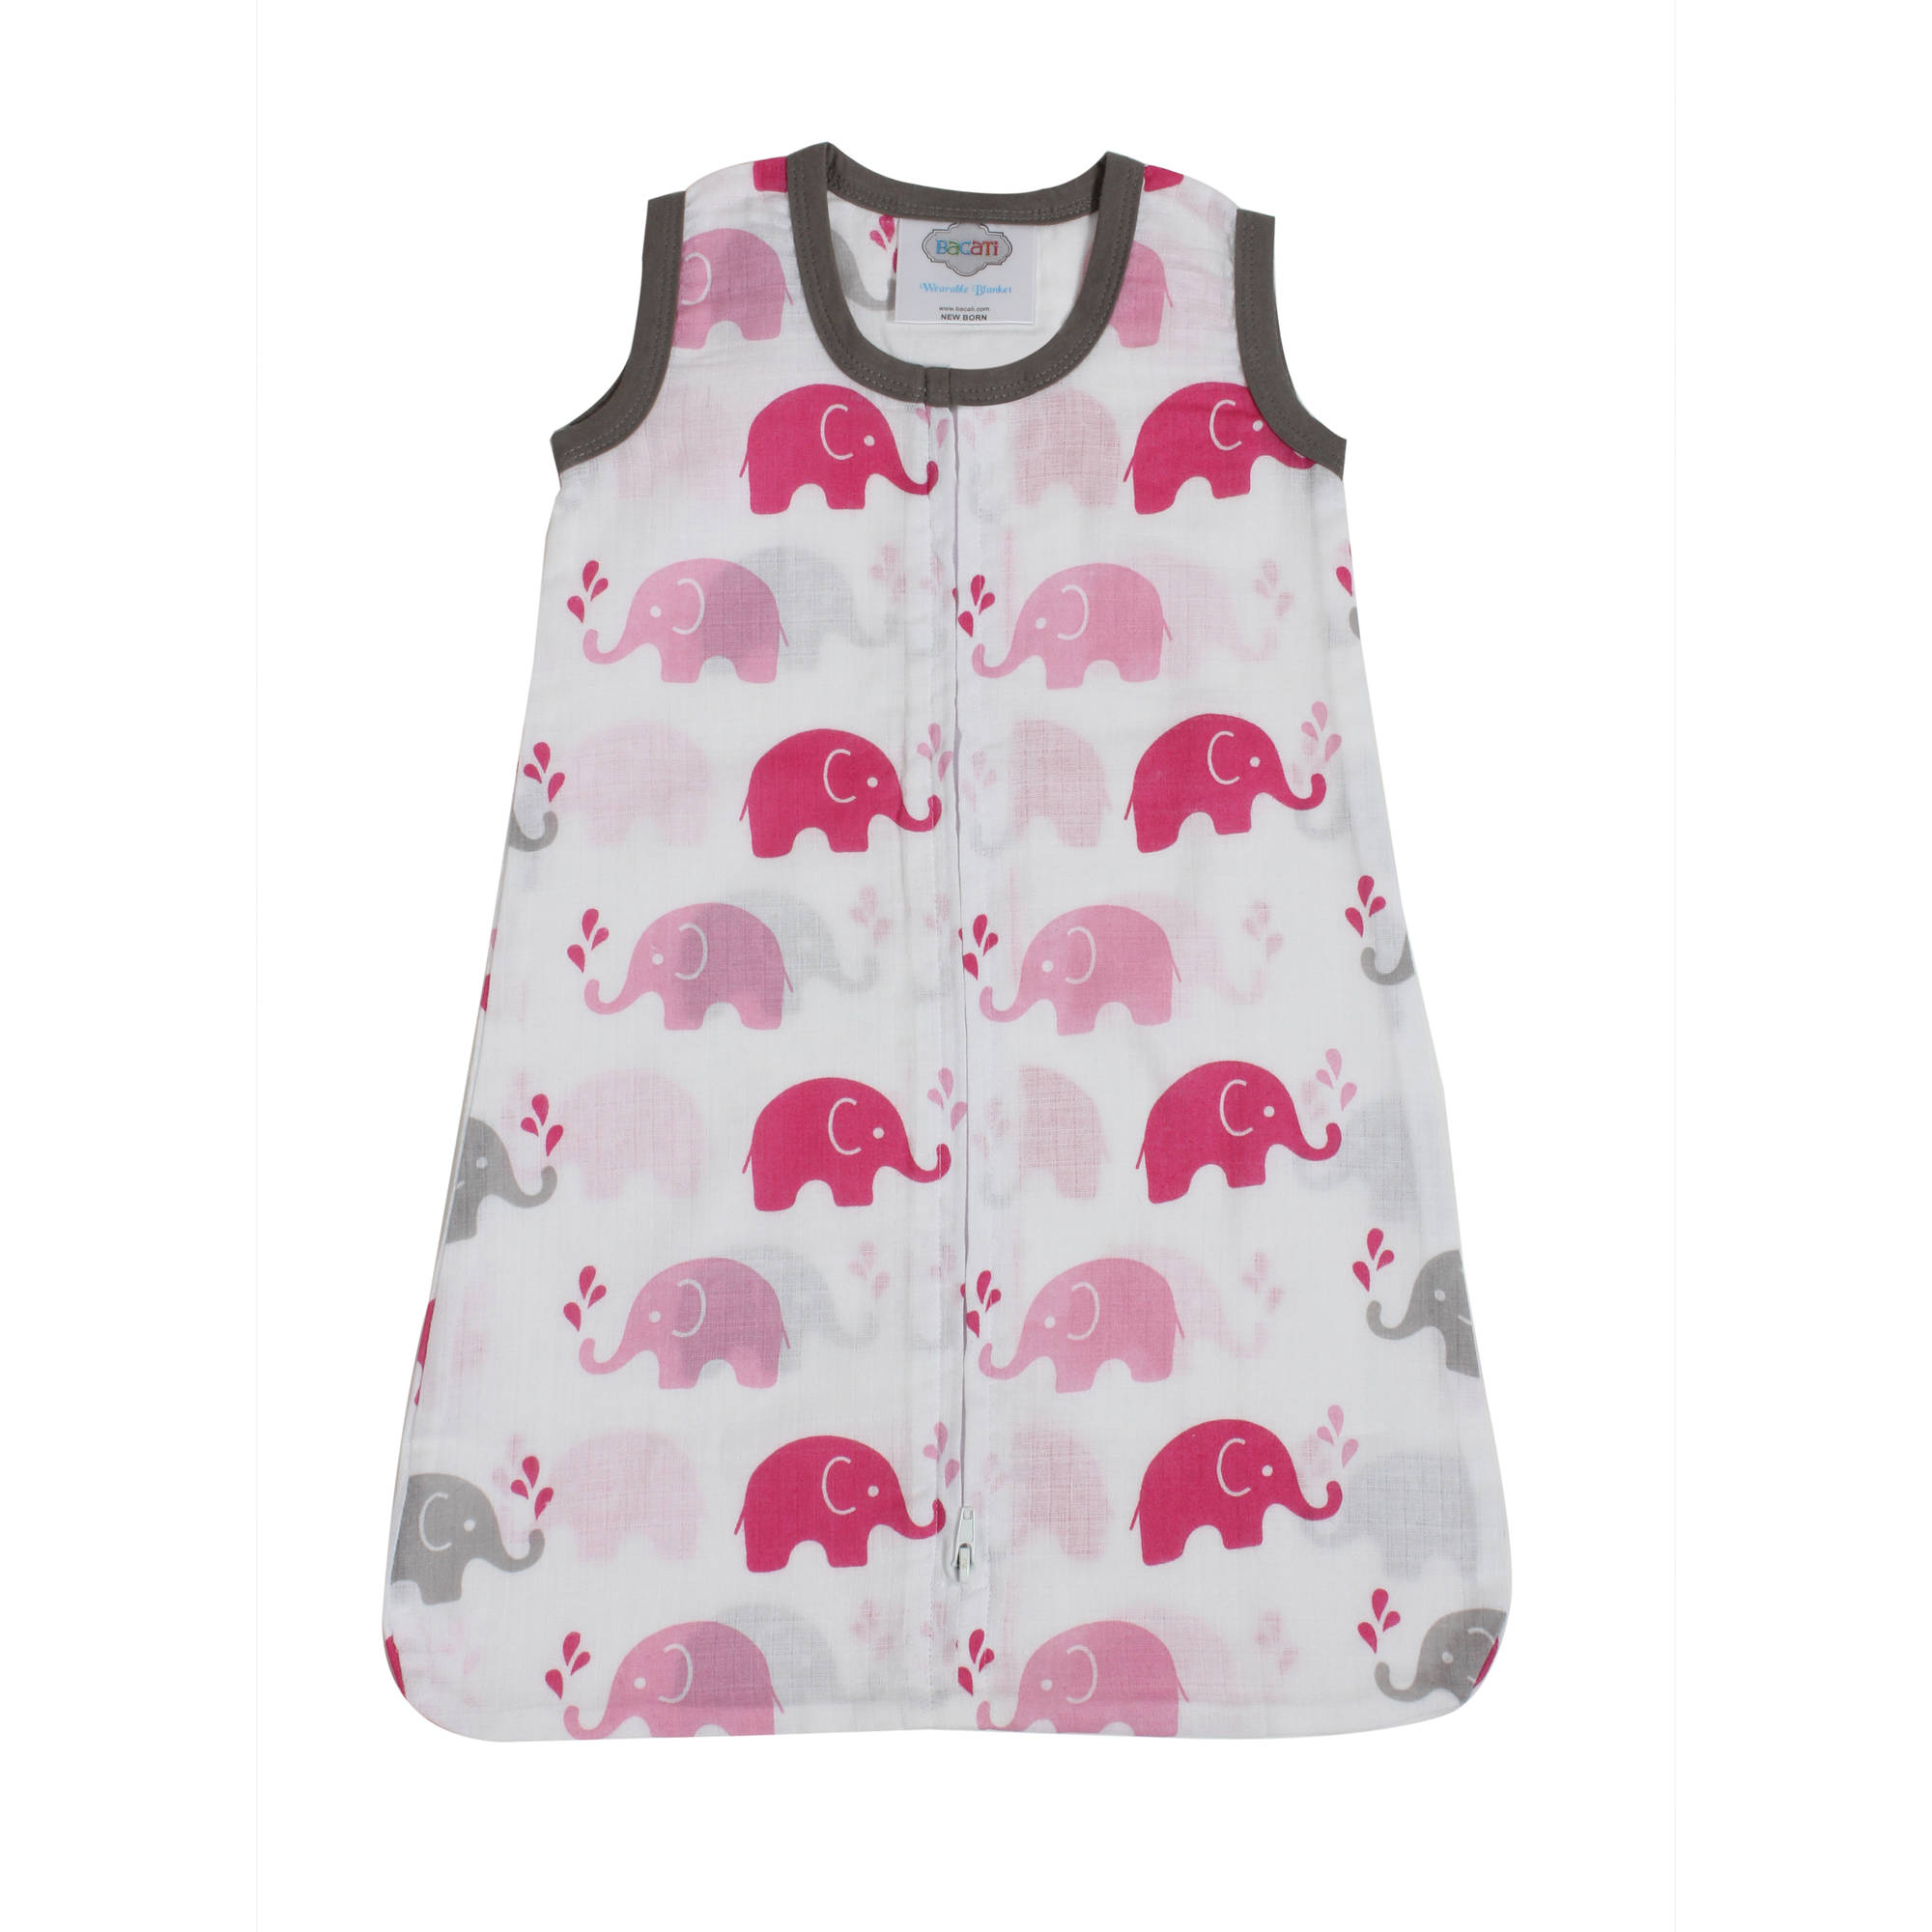 Bacati - Elephants Pink/Grey Muslin Sleep Sack